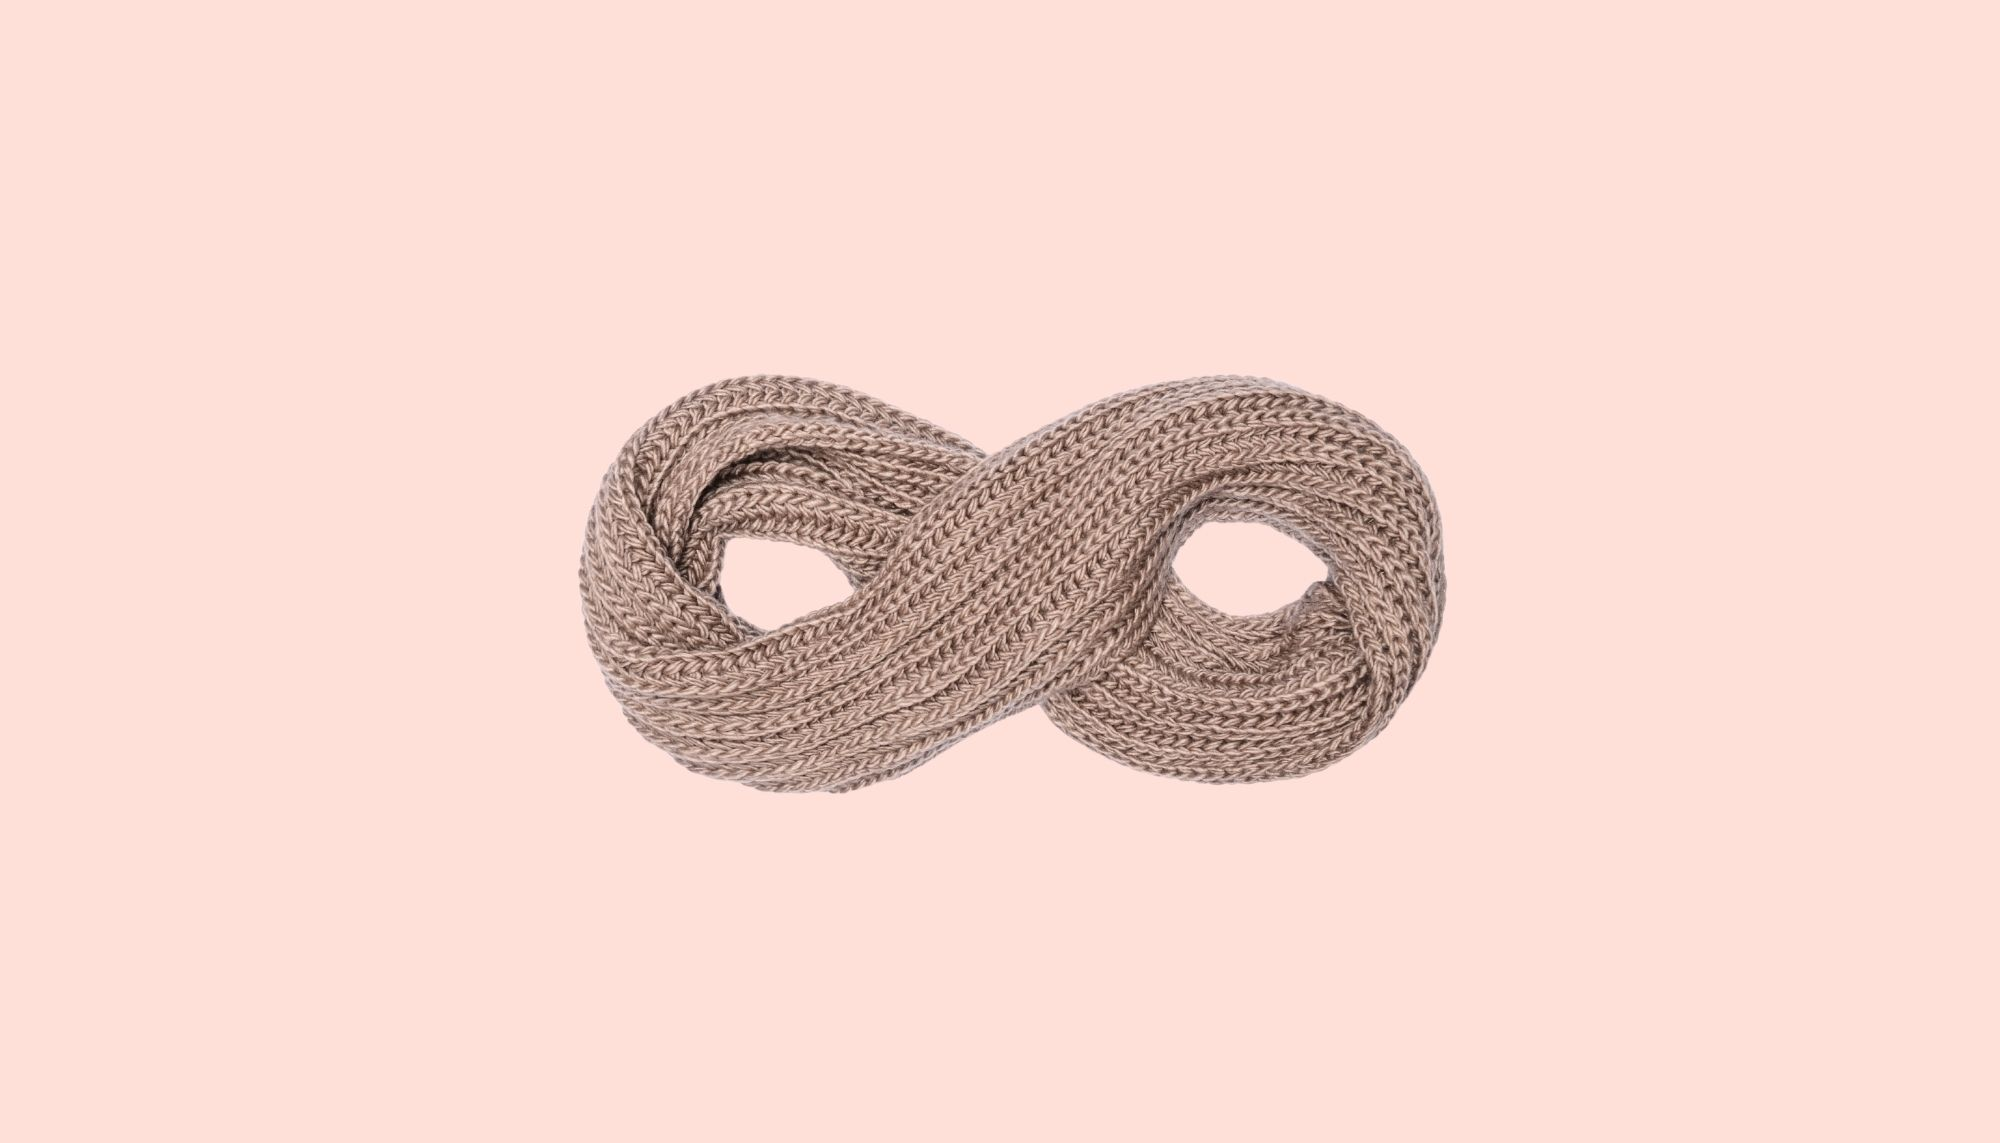 How to Wear an Infinity Scarf (11 Ways), From Simple to Extravagant